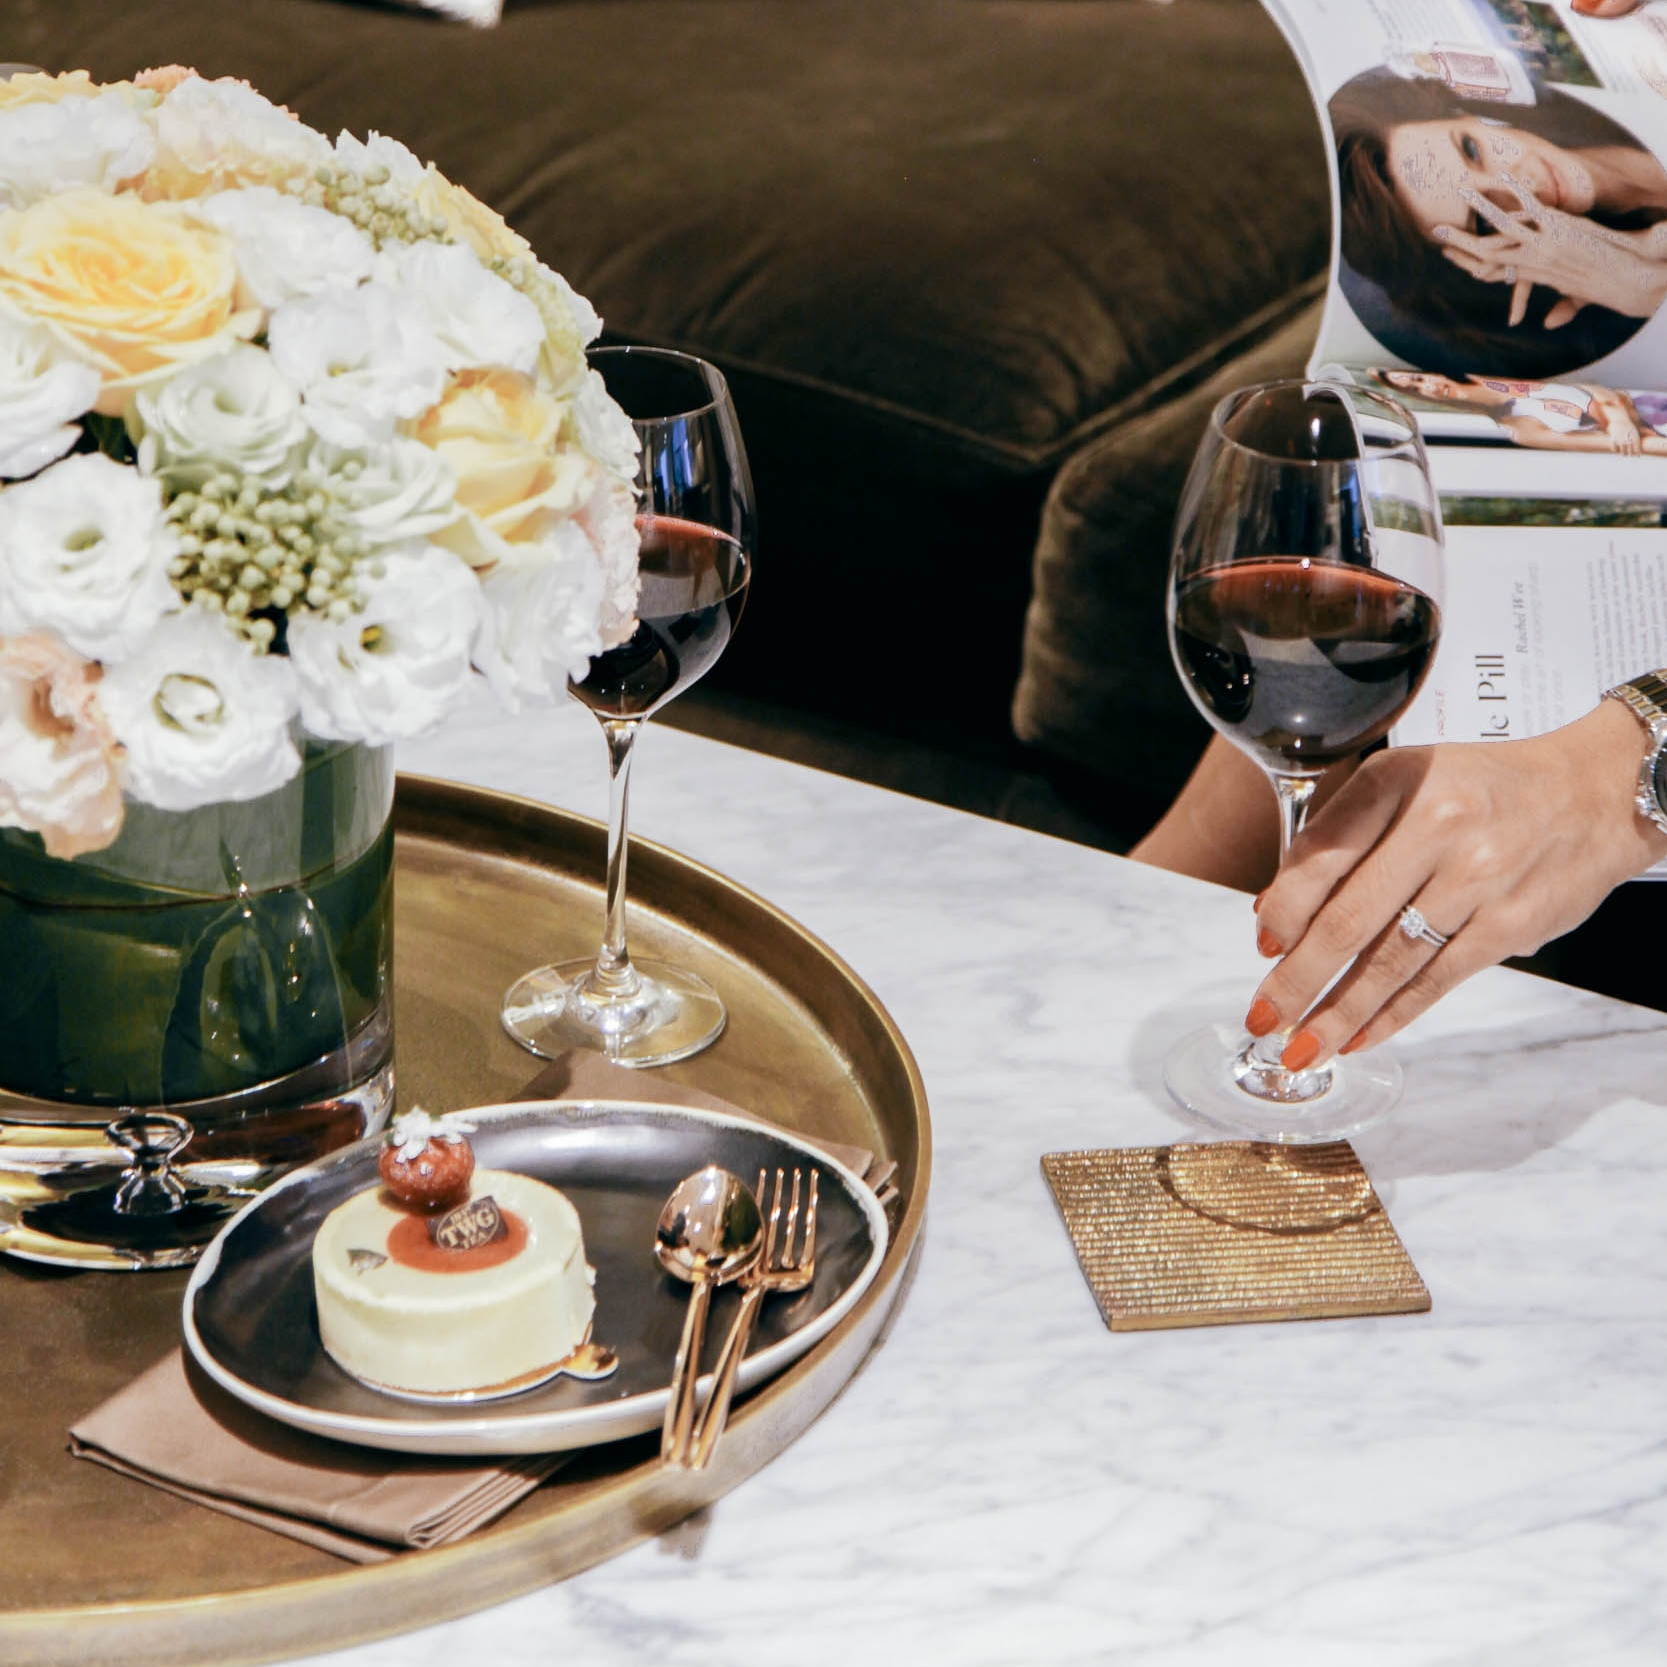 - A bouquet of fresh flowers work as the perfect centerpiece to show off the elegance of the Socialite's coffee table; little else is needed to accessorise the coffee table's grand marble surface and sturdy metal legs